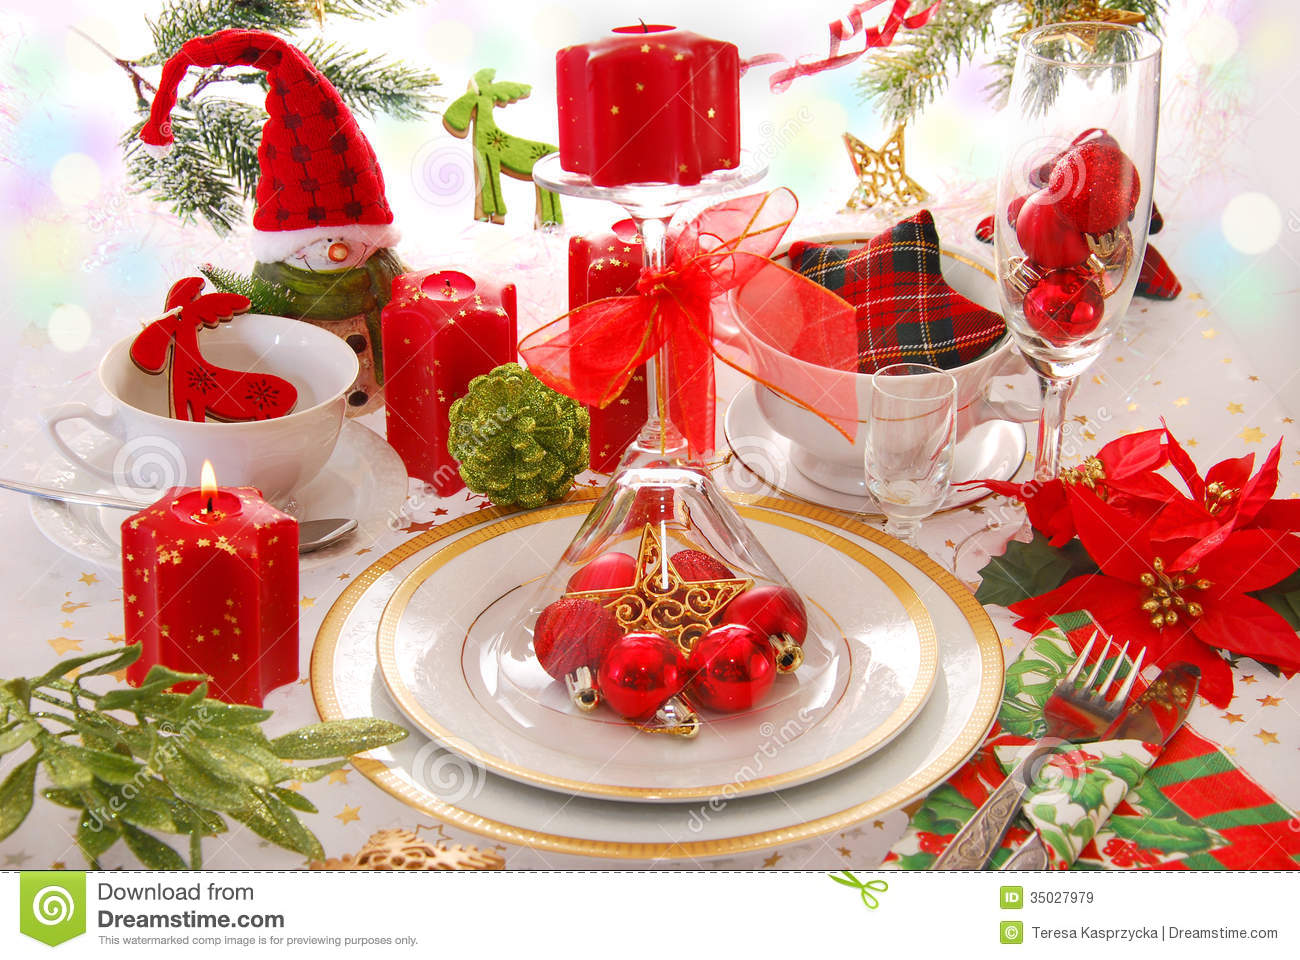 Elegant christmas table decorations - Christmas Decoration Red Table